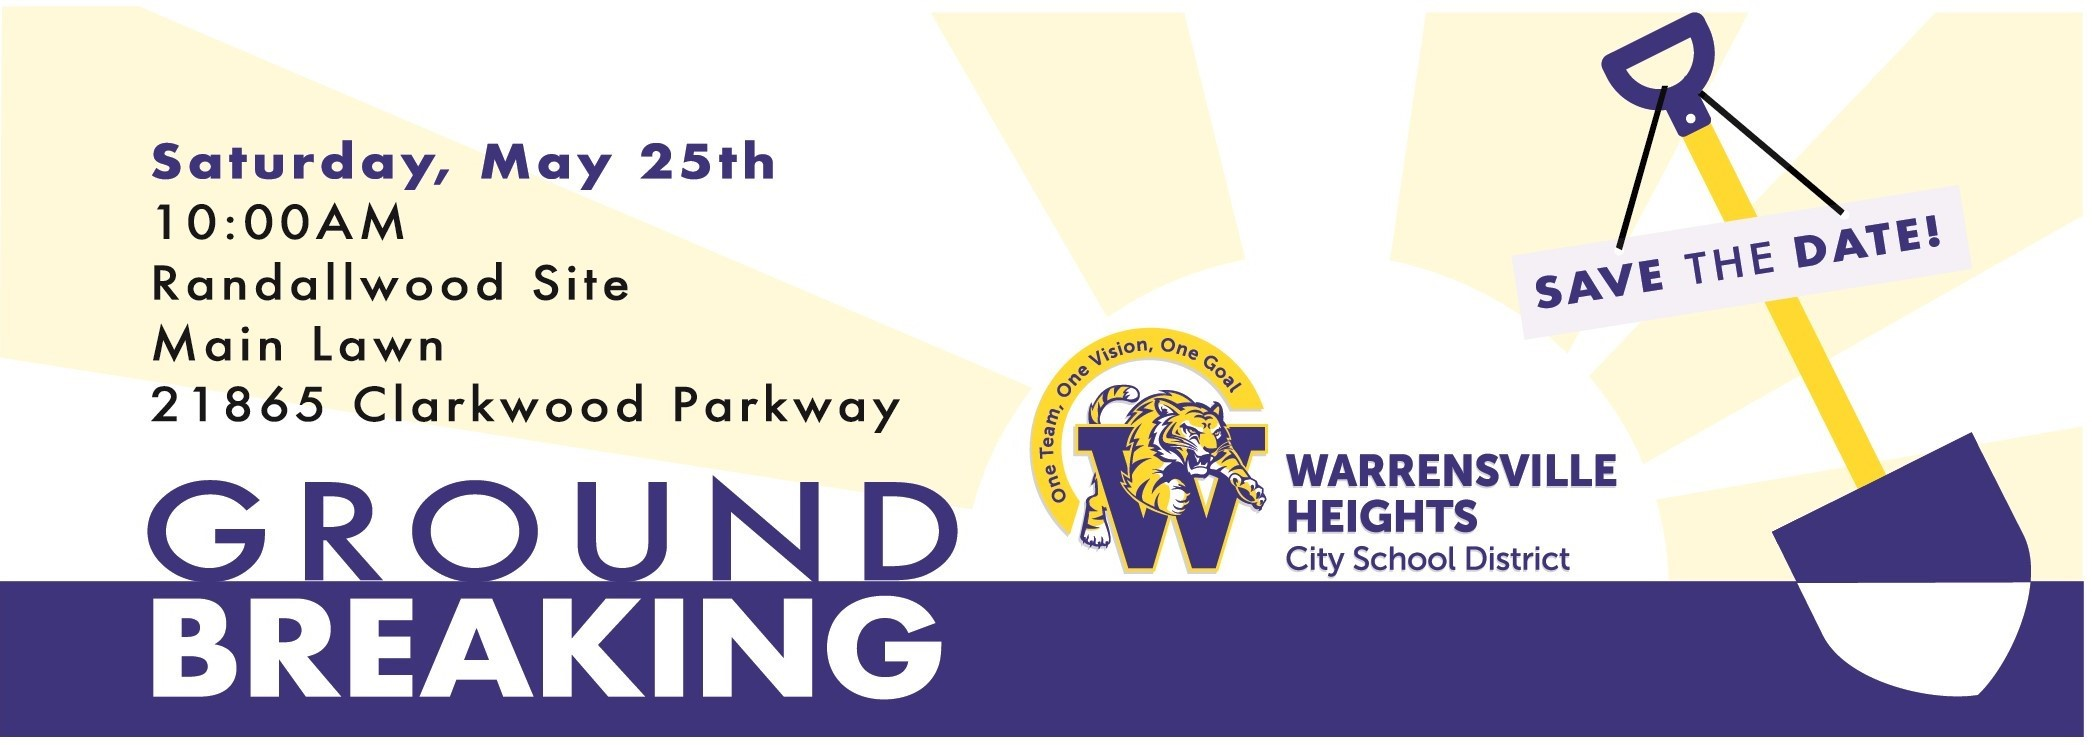 May 25th Groundbreaking for new school